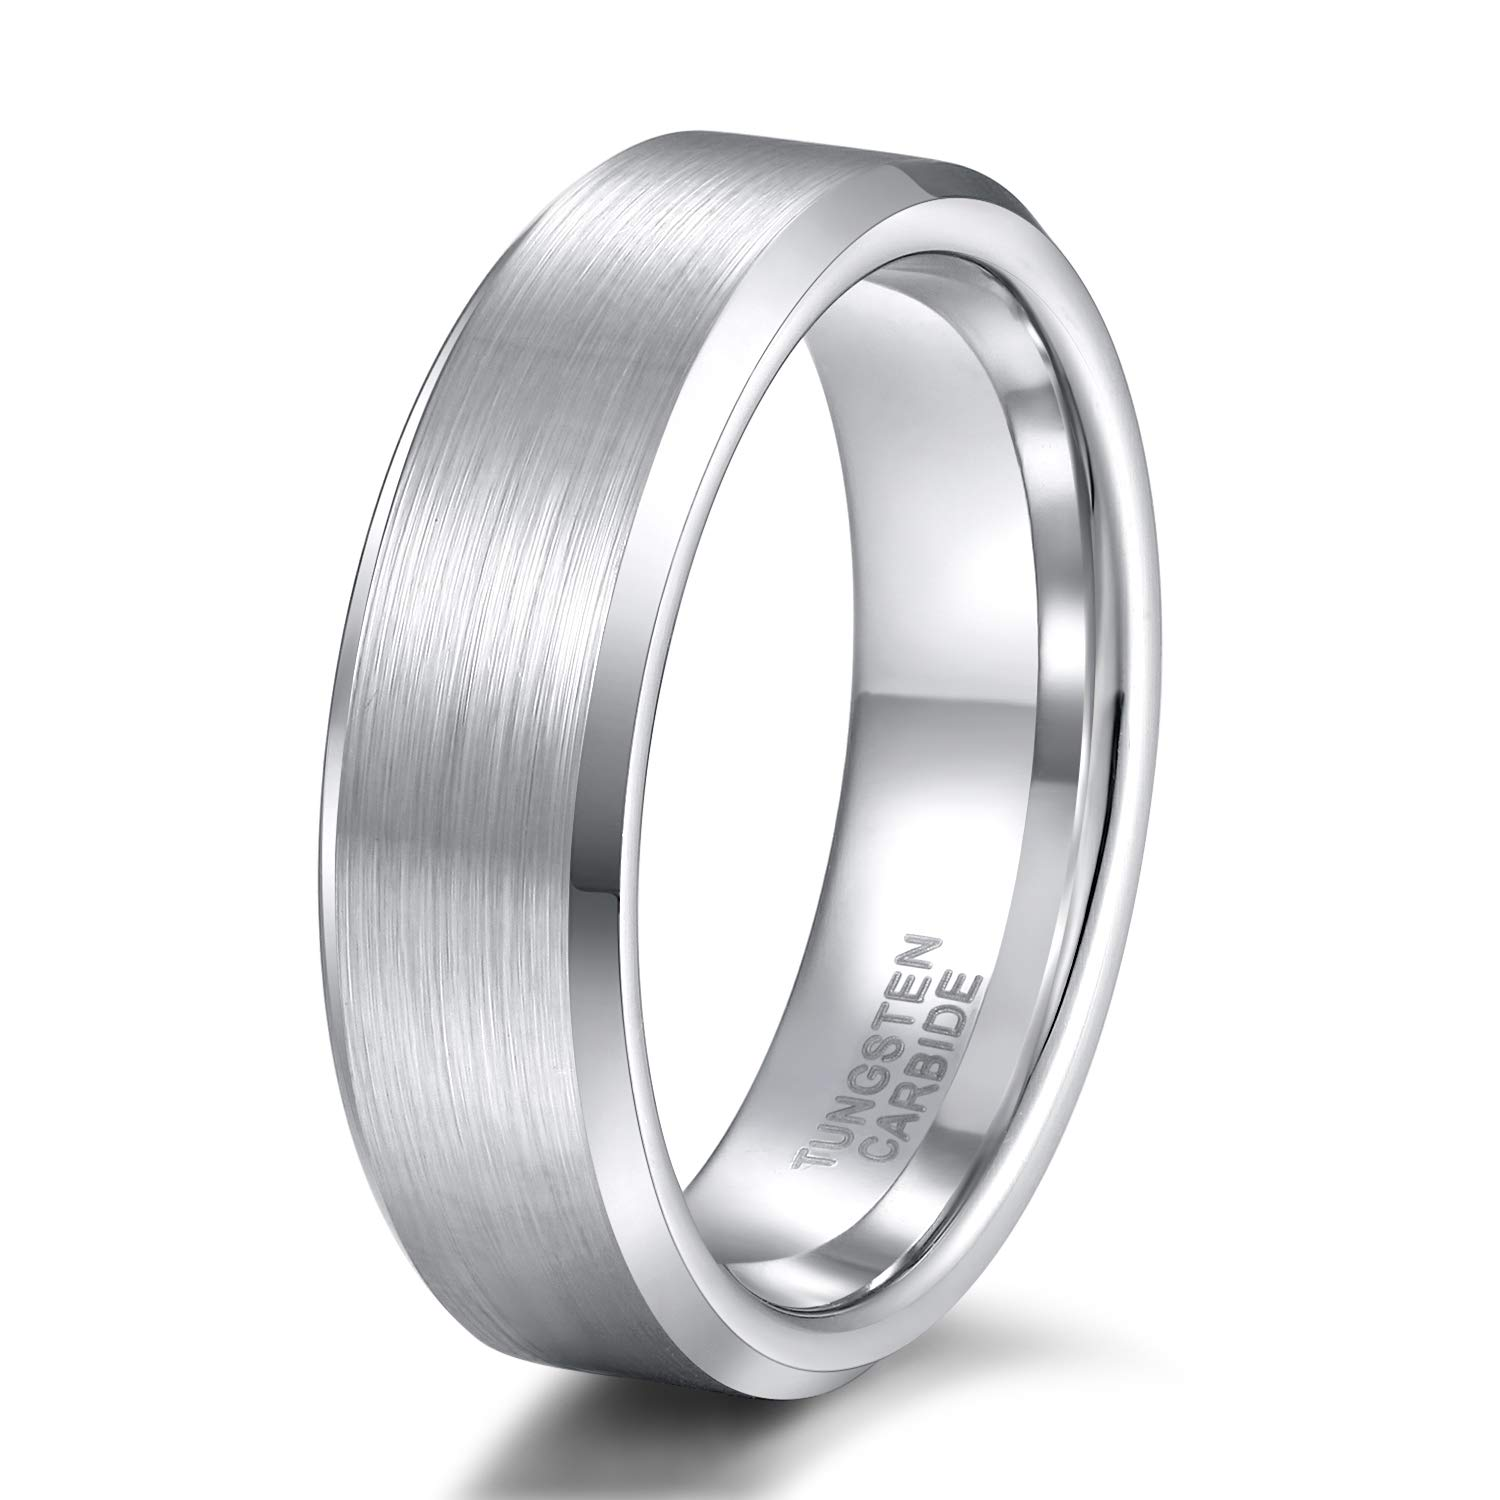 6mm Silver Wedding Band for Him and Her Matter Brushed Tungsten Carbide Ring Size 9